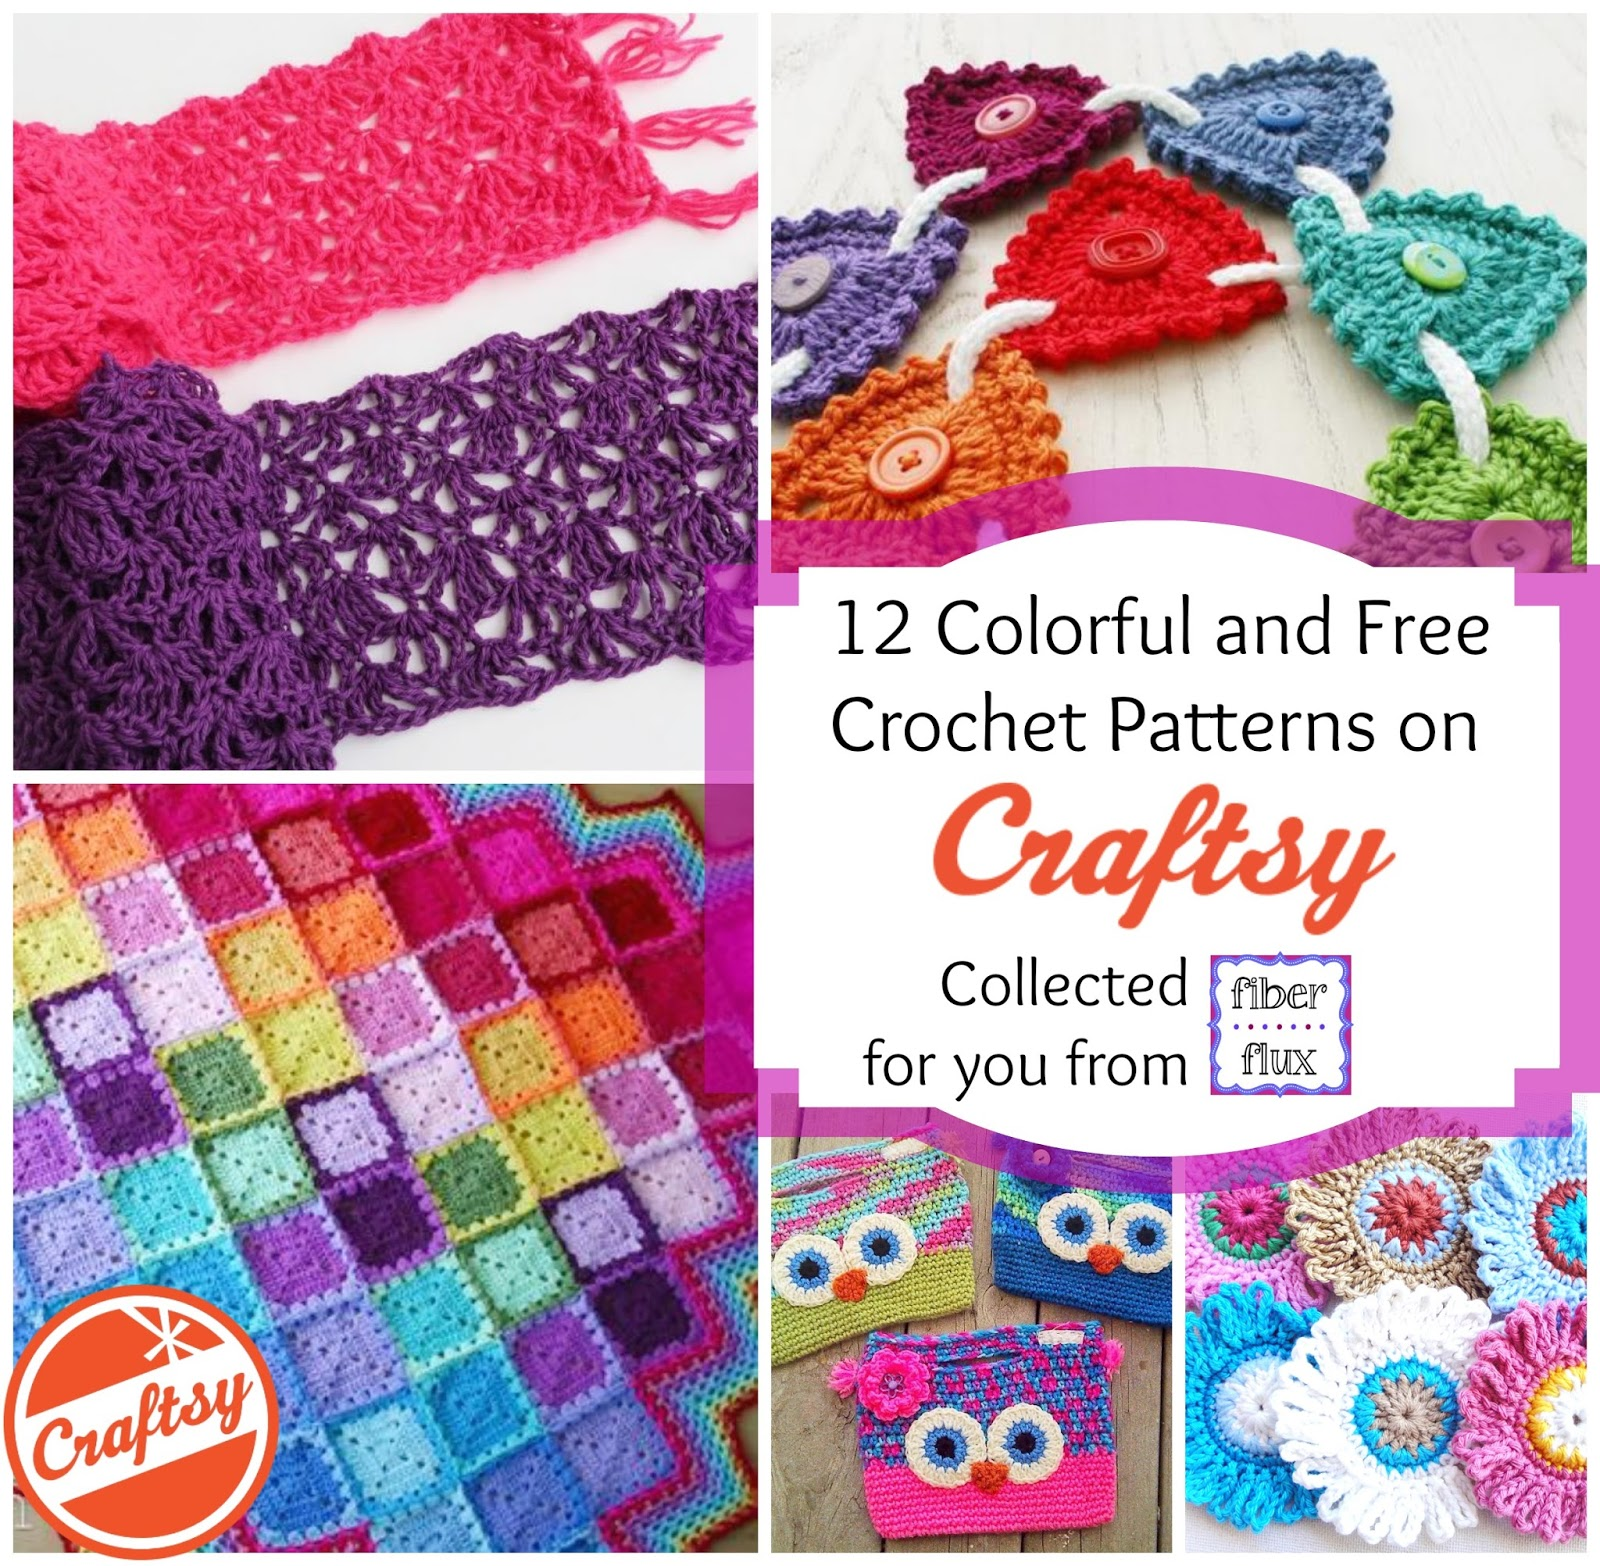 Fiber Flux: 12 Free and Colorful Patterns from Craftsy!